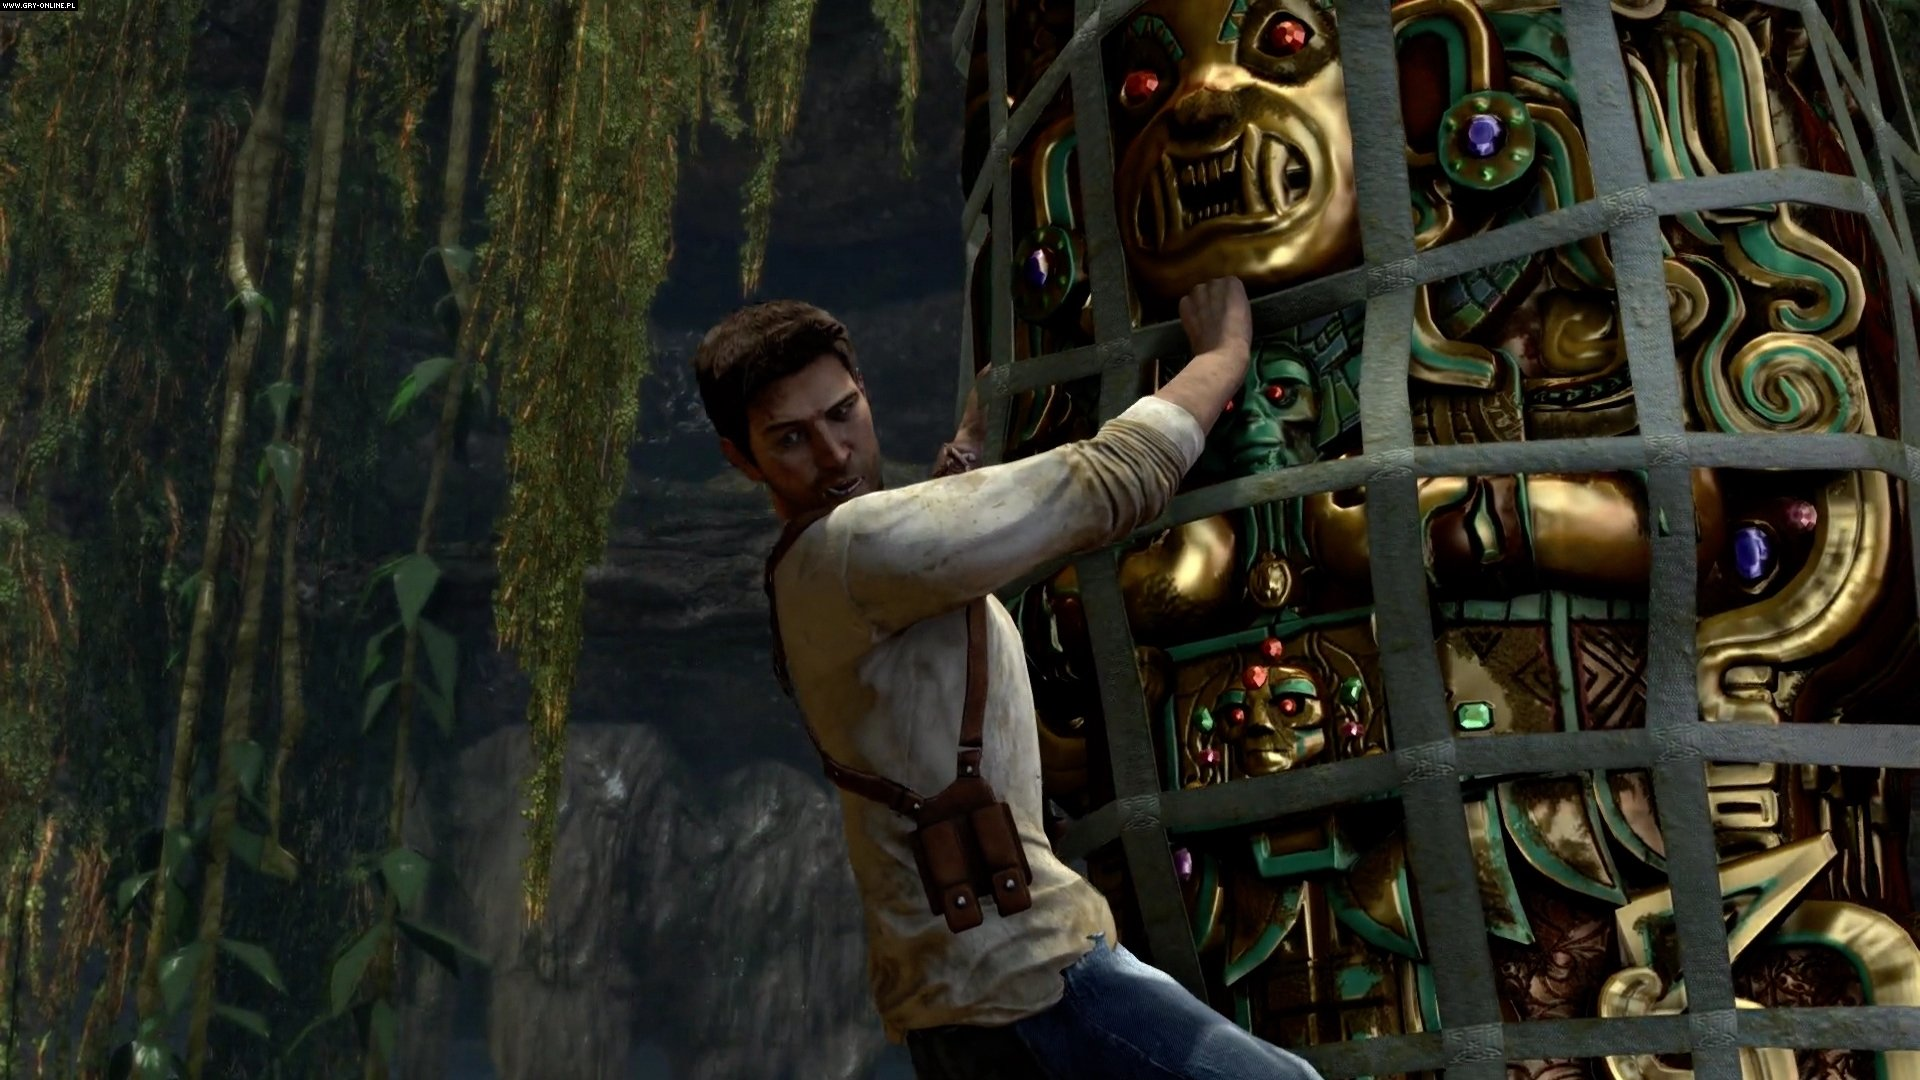 Uncharted: Drake's Fortune PS4 Games Image 34/80, Bluepoint Games, Sony Interactive Entertainment